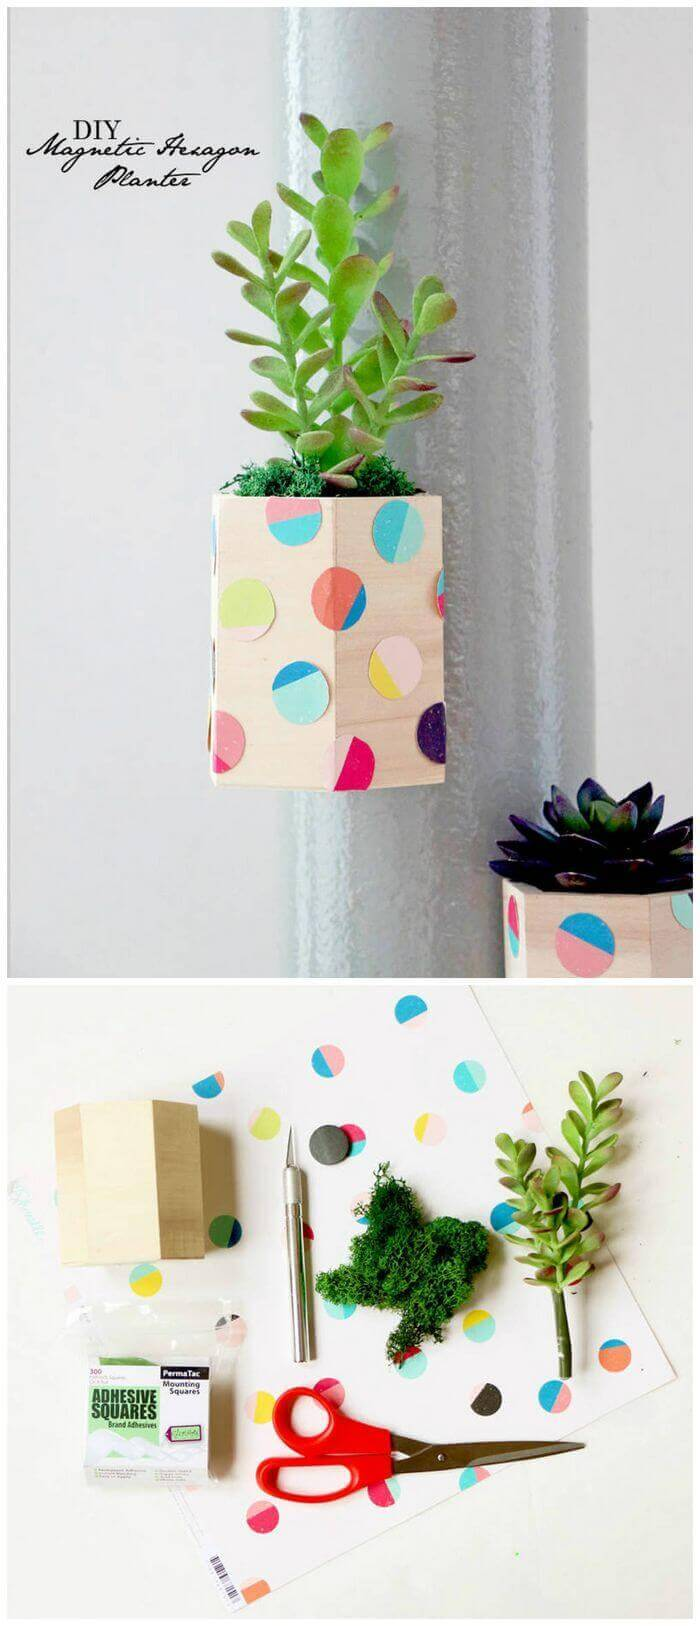 DIY Magnetic Hexagon Planters